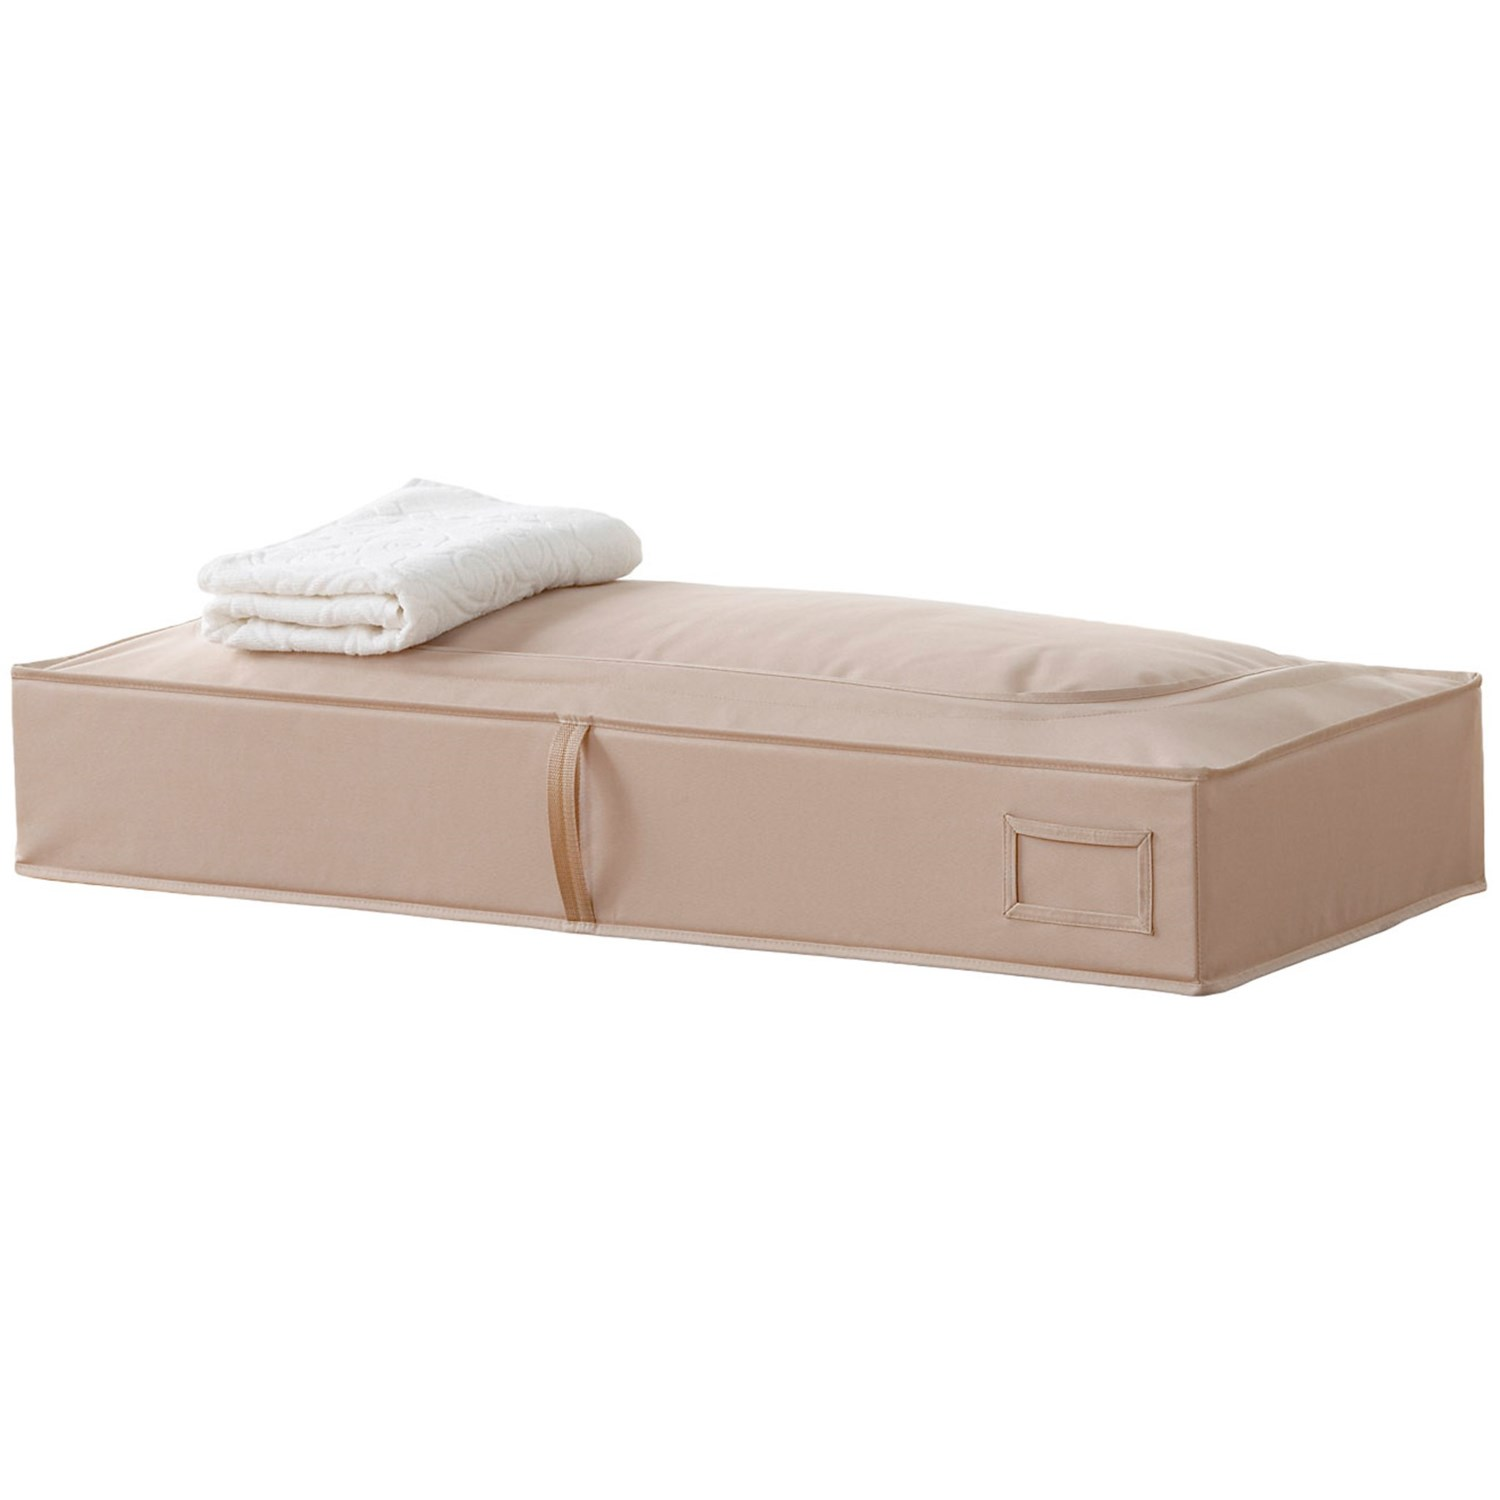 closetMAX Under Bed Storage Bag in Sand Pebble Taupe